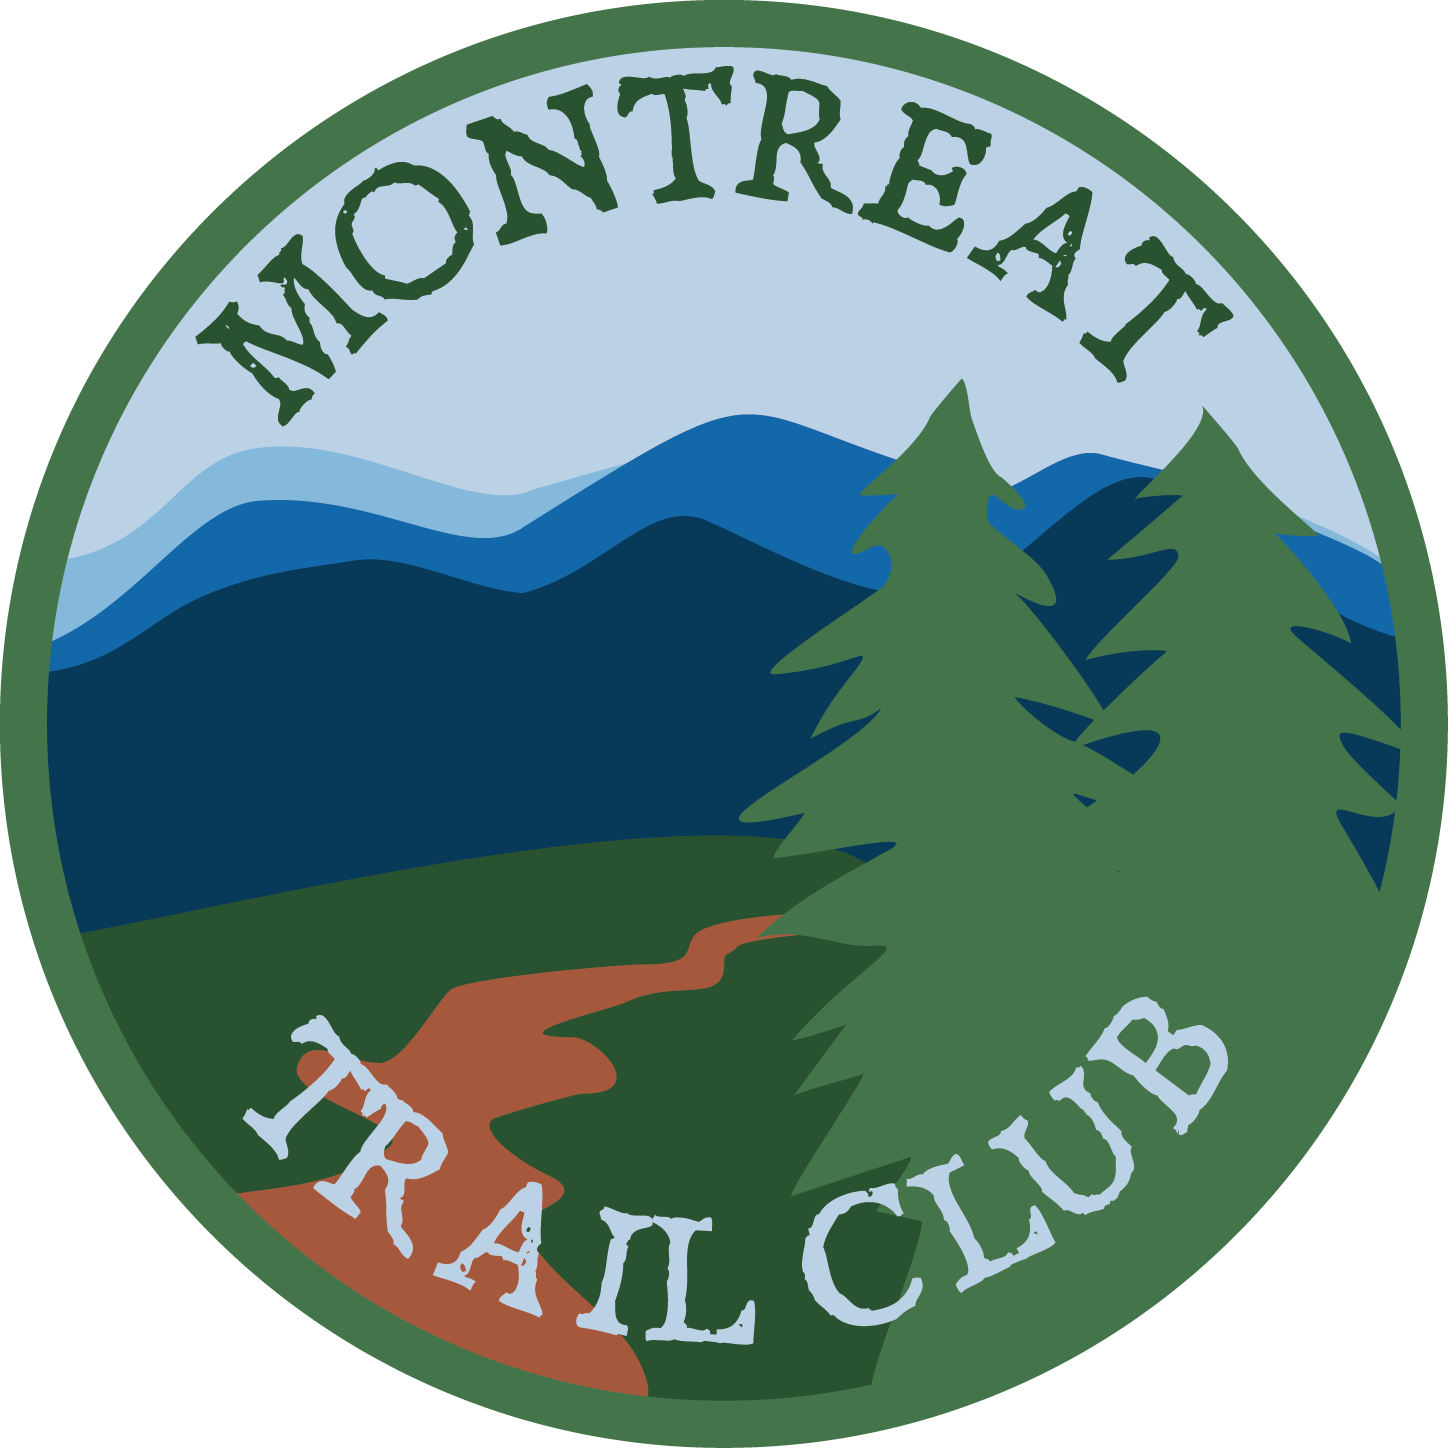 Montreat Trail Club